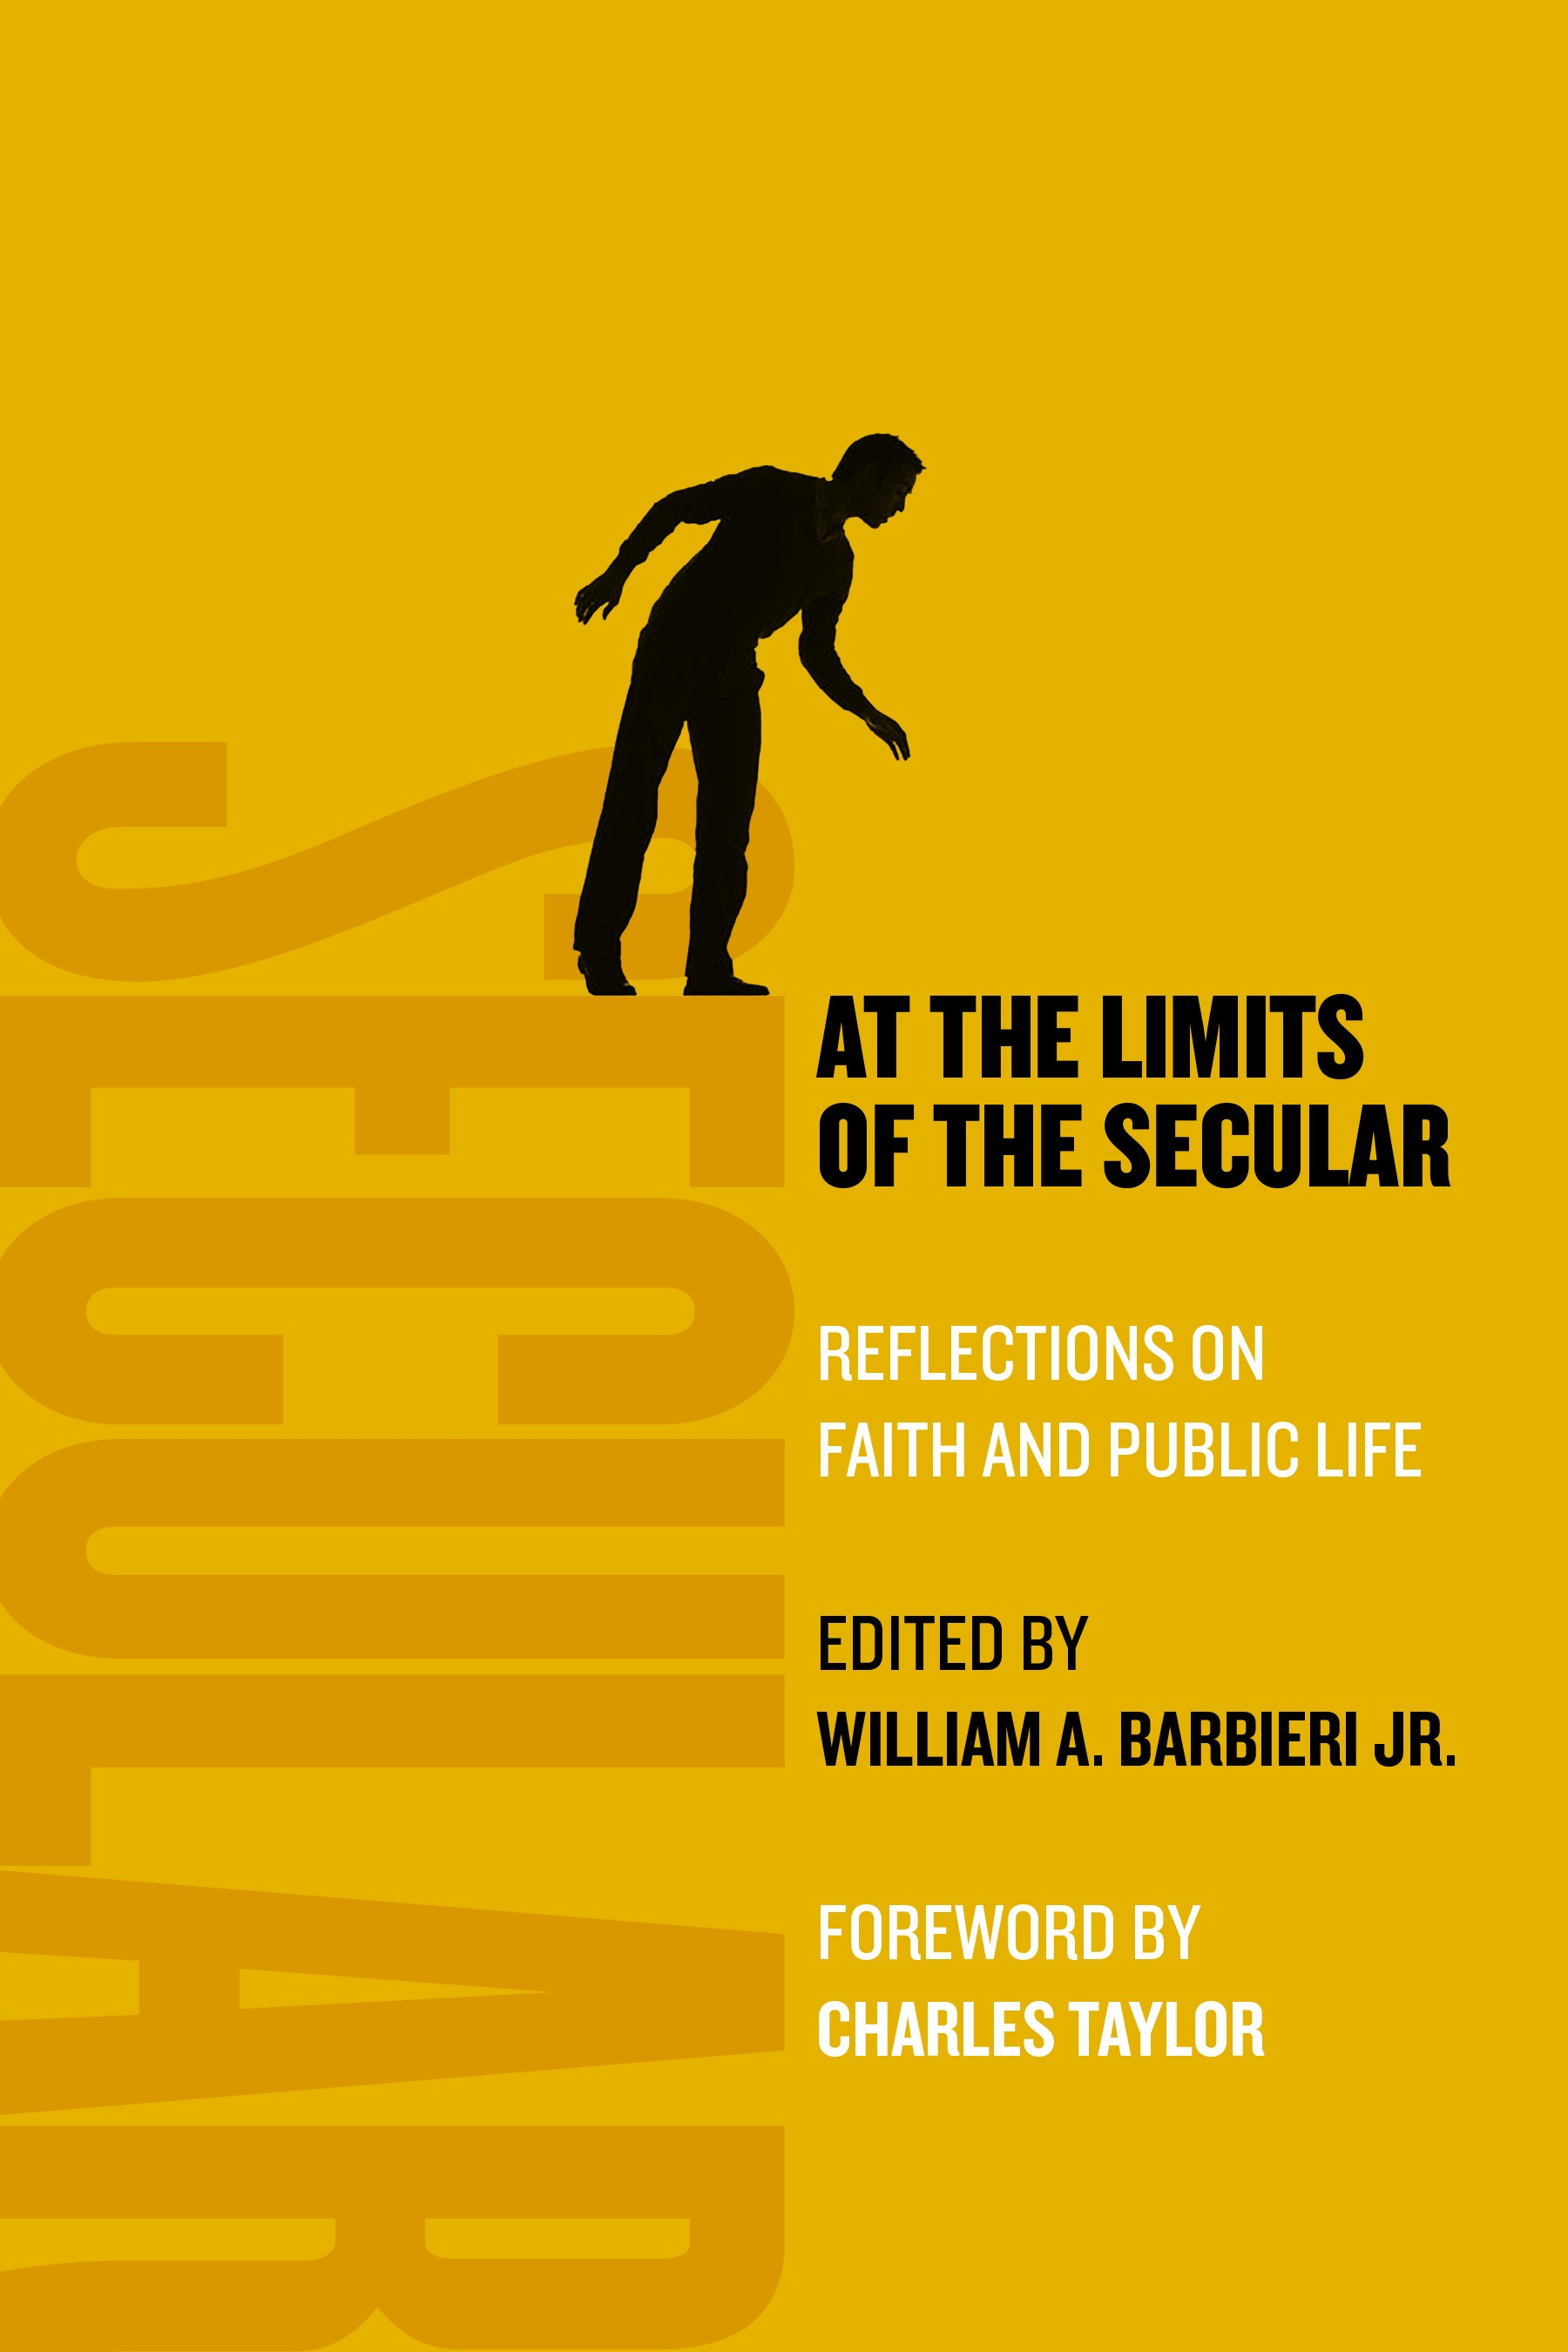 the secular worldview essay The difference between christian and secular leadership the worldview expressed in jean-jacques rousseau's maxim 'the state is the agency of emancipation' the stark contrast between christian and secular leadership is drawn by christ himself in matt 20:25-28.